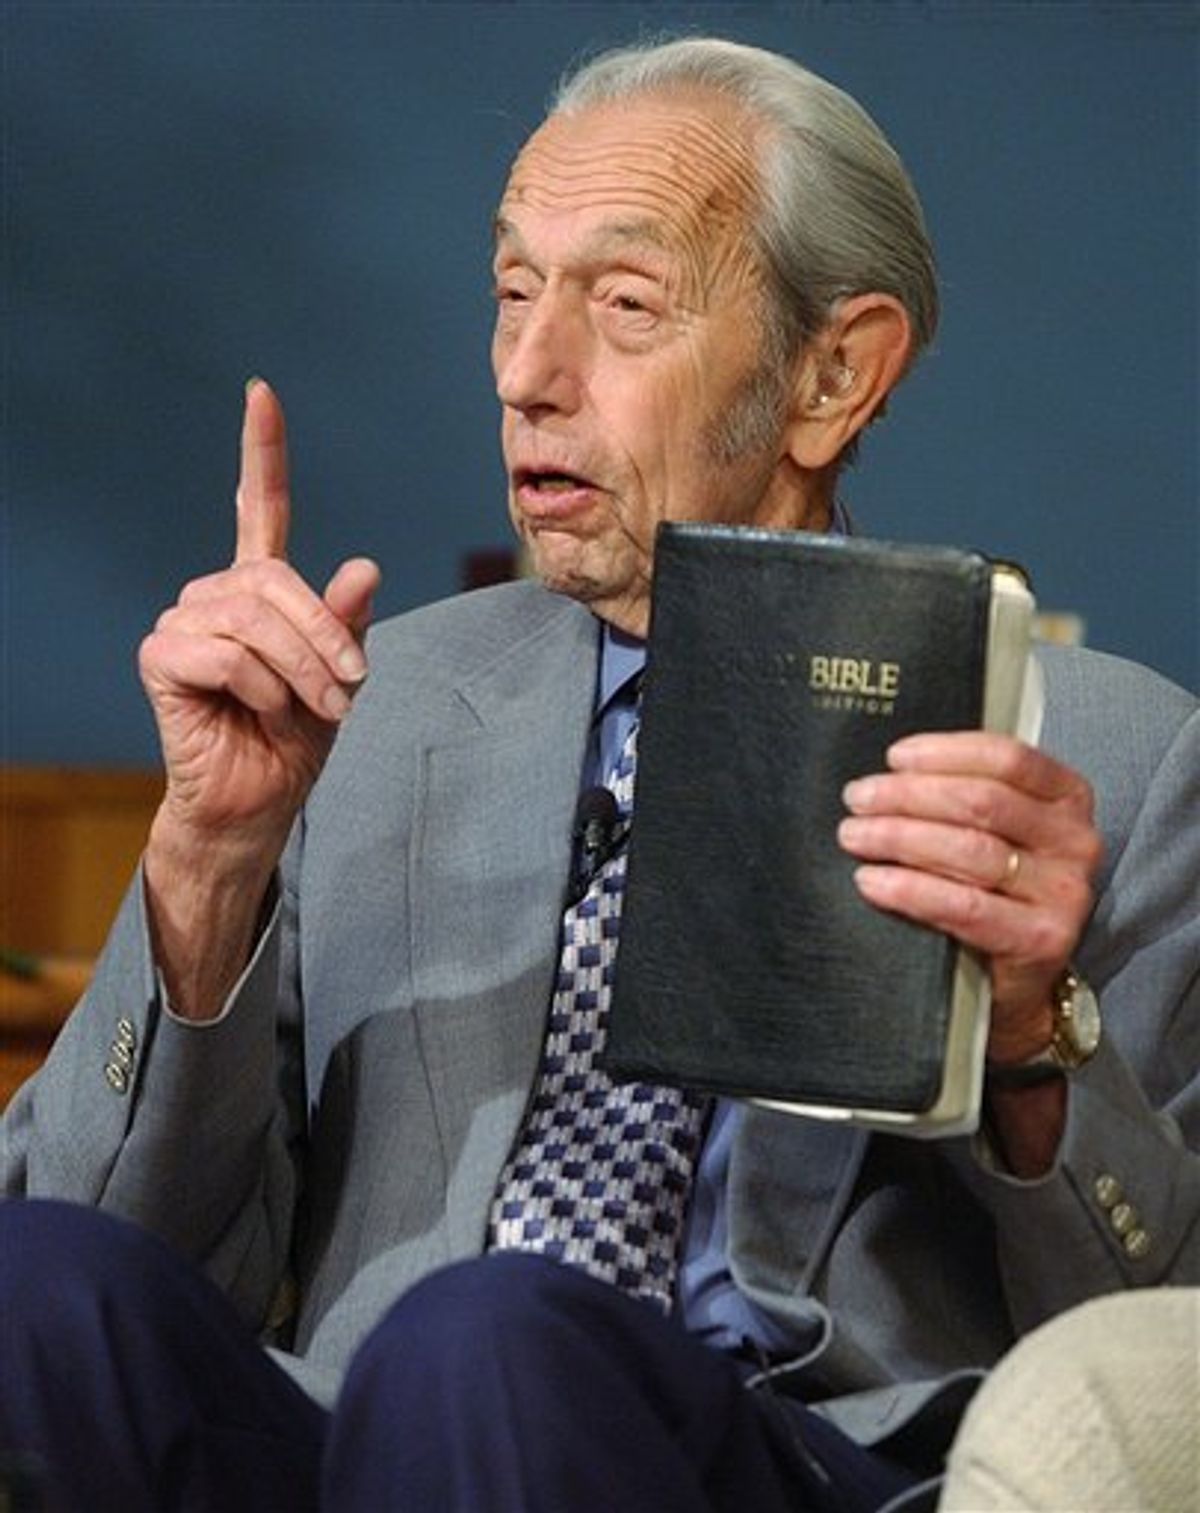 FILE - In this Dec. 12, 2002 file photo, Harold Camping speaks while holding the Bible, in San Leandro, Calif. A loosely organized Christian movement has spread the word around the globe that Jesus Christ will return to earth on Saturday, May 21, 2011, to gather the faithful into heaven. While the Christian mainstream isn't buying it, many other skeptics are believing it. The prediction originates with Camping, the 89-year-old retired civil engineer, who founded Family Radio Worldwide, an independent ministry that has broadcasted his prediction around the world. (AP Photo, File) (AP)